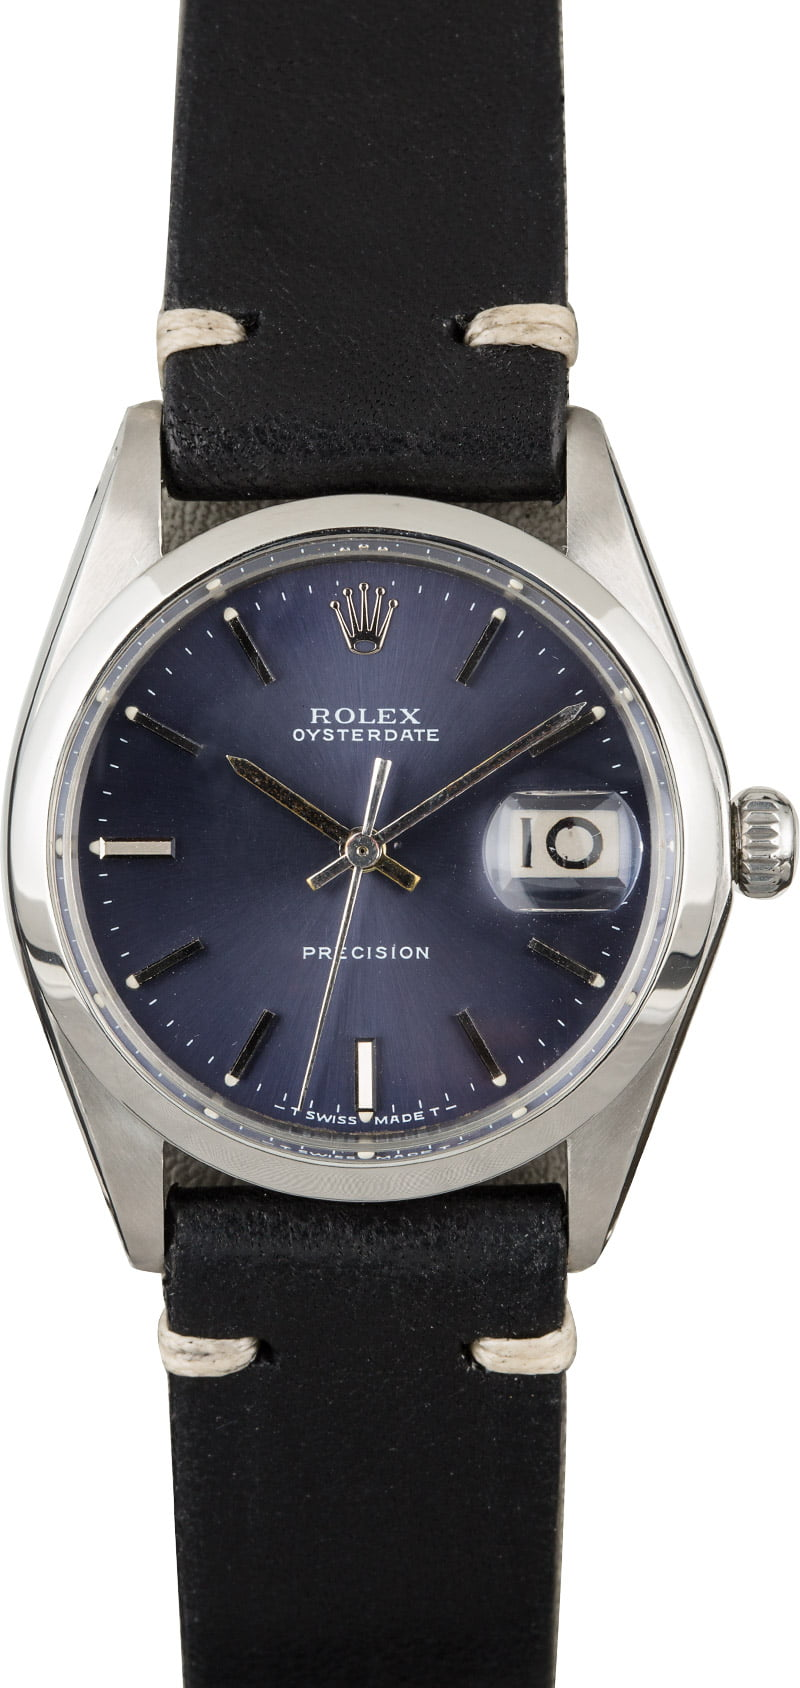 Rolex OysterDate 6694 Blue Index Dial